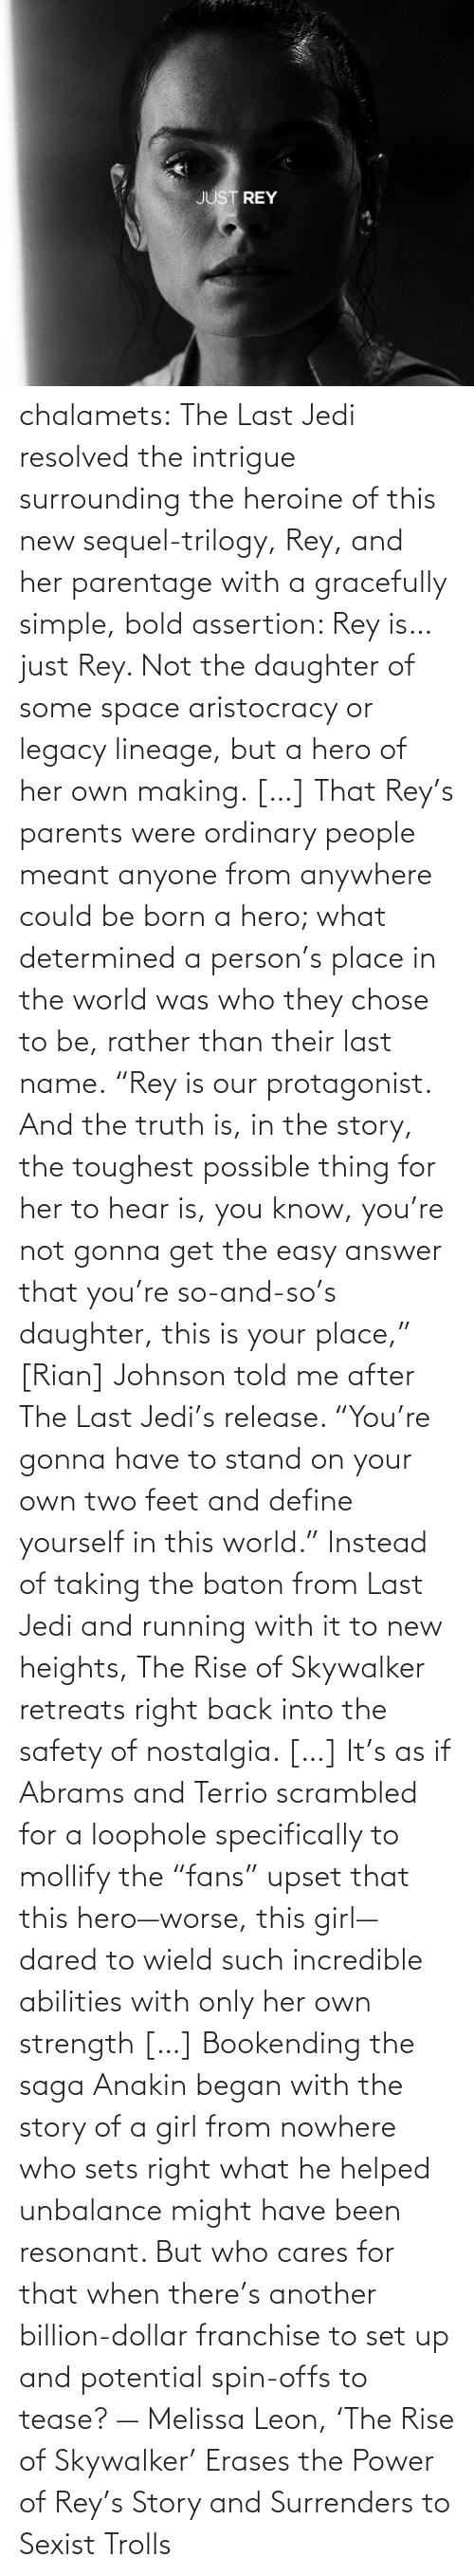 "sexist: chalamets:  The Last Jedi resolved the intrigue surrounding the heroine of this new sequel-trilogy, Rey, and her parentage with a gracefully simple, bold assertion: Rey is… just Rey. Not the daughter of some space aristocracy or legacy lineage, but a hero of her own making. […] That Rey's parents were ordinary people meant anyone from anywhere could be born a hero; what determined a person's place in the world was who they chose to be, rather than their last name. ""Rey is our protagonist. And the truth is, in the story, the toughest possible thing for her to hear is, you know, you're not gonna get the easy answer that you're so-and-so's daughter, this is your place,"" [Rian] Johnson told me after The Last Jedi's release. ""You're gonna have to stand on your own two feet and define yourself in this world."" Instead of taking the baton from Last Jedi and running with it to new heights, The Rise of Skywalker retreats right back into the safety of nostalgia. […] It's as if Abrams and Terrio scrambled for a loophole specifically to mollify the ""fans"" upset that this hero—worse, this girl—dared to wield such incredible abilities with only her own strength […] Bookending the saga Anakin began with the story of a girl from nowhere who sets right what he helped unbalance might have been resonant. But who cares for that when there's another billion-dollar franchise to set up and potential spin-offs to tease? — Melissa Leon, 'The Rise of Skywalker' Erases the Power of Rey's Story and Surrenders to Sexist Trolls"